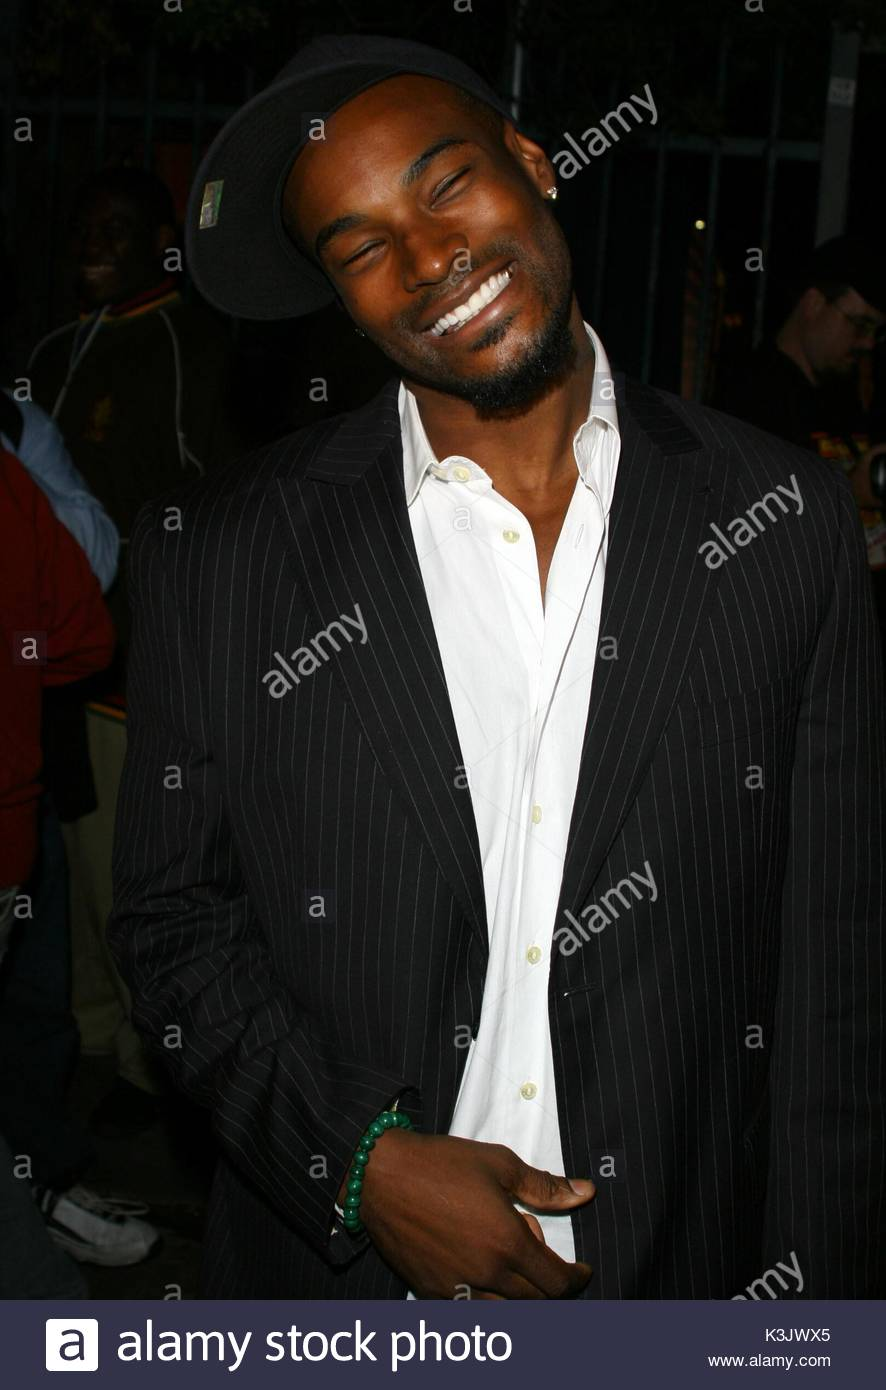 4ba7c740d95 Model and actor tyson beckford leaving the us weekly hot hollywood event at  the opera nightclub